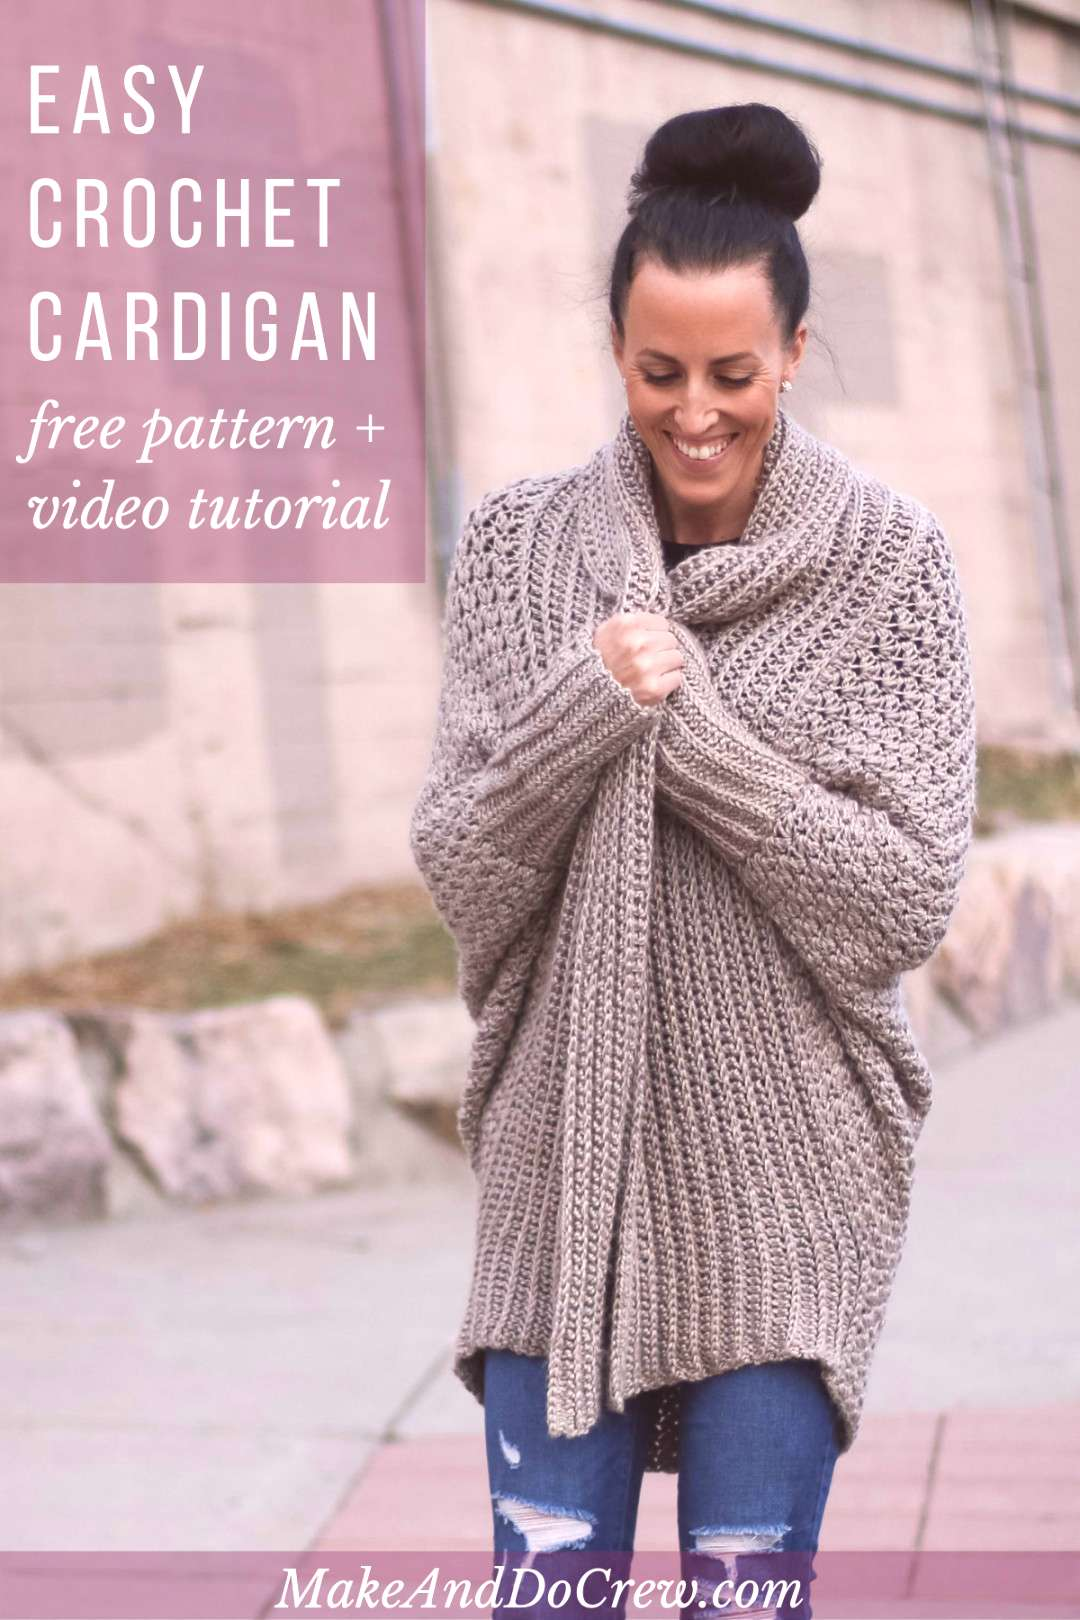 Learn How to Make an Easy Crochet Cardigan - Free Pattern + Video Tutorial Learn how to make an eas